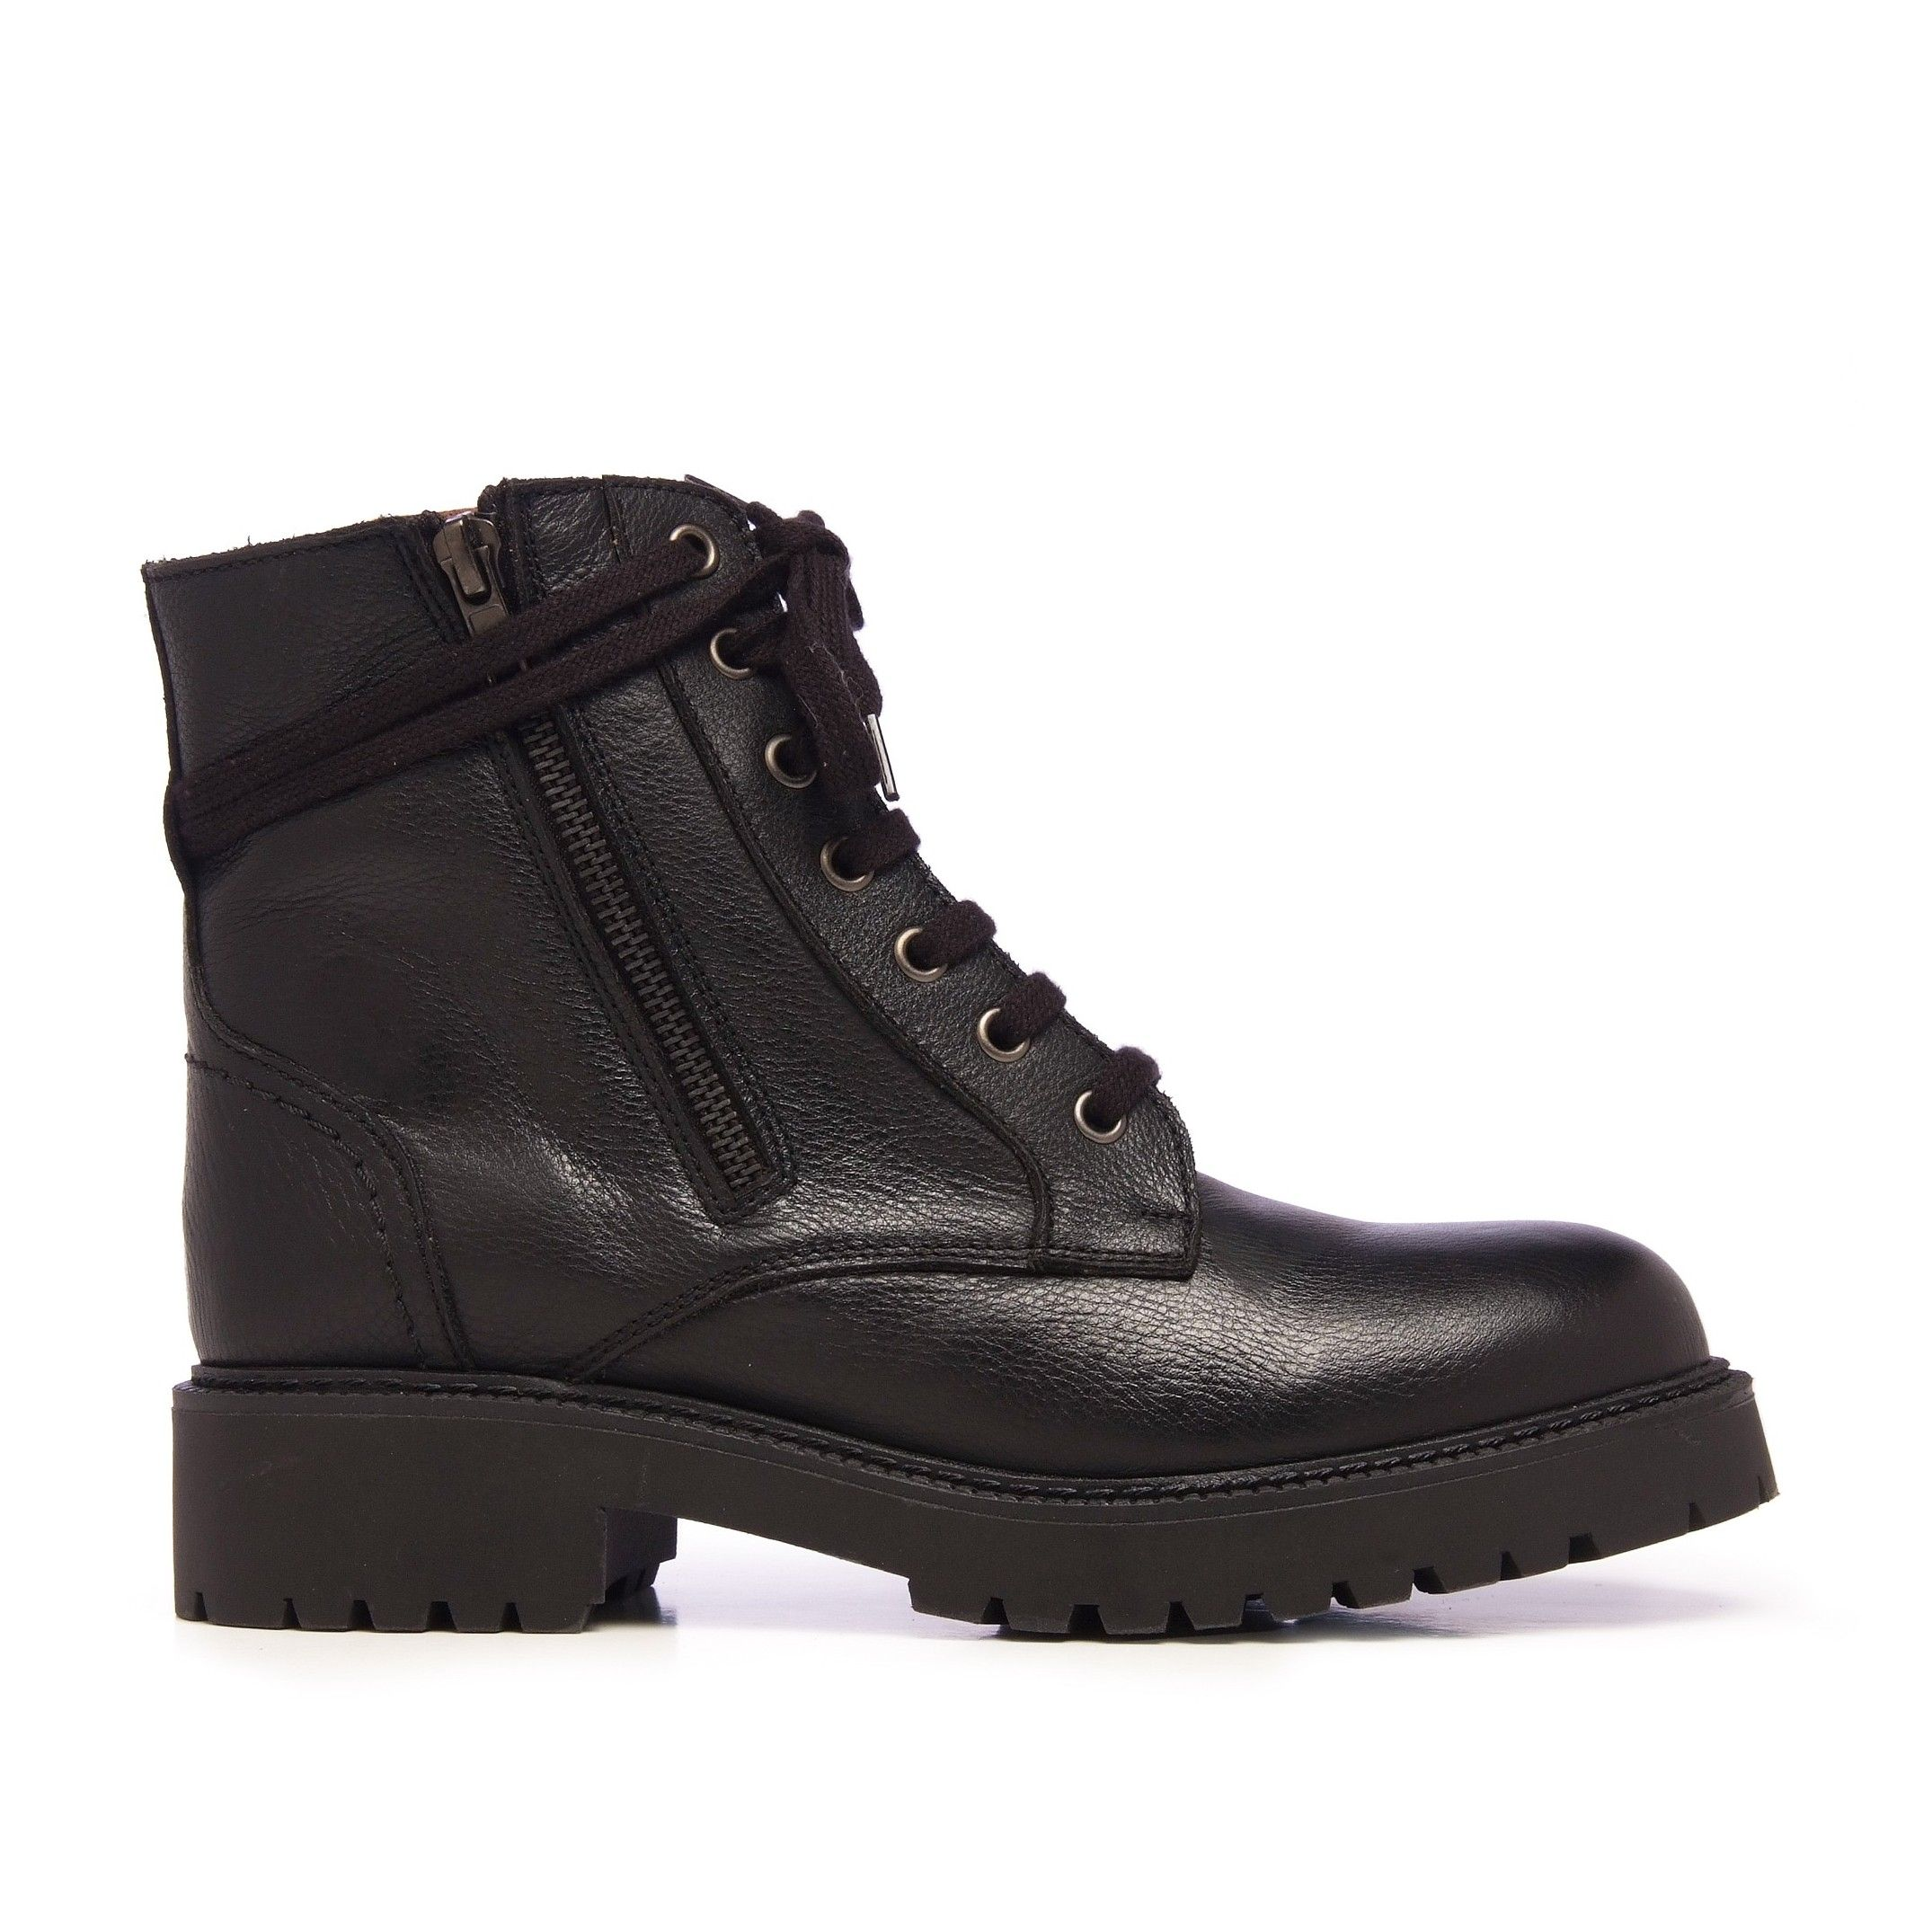 María Barceló Womens Leather Lace-Up Boots in Black